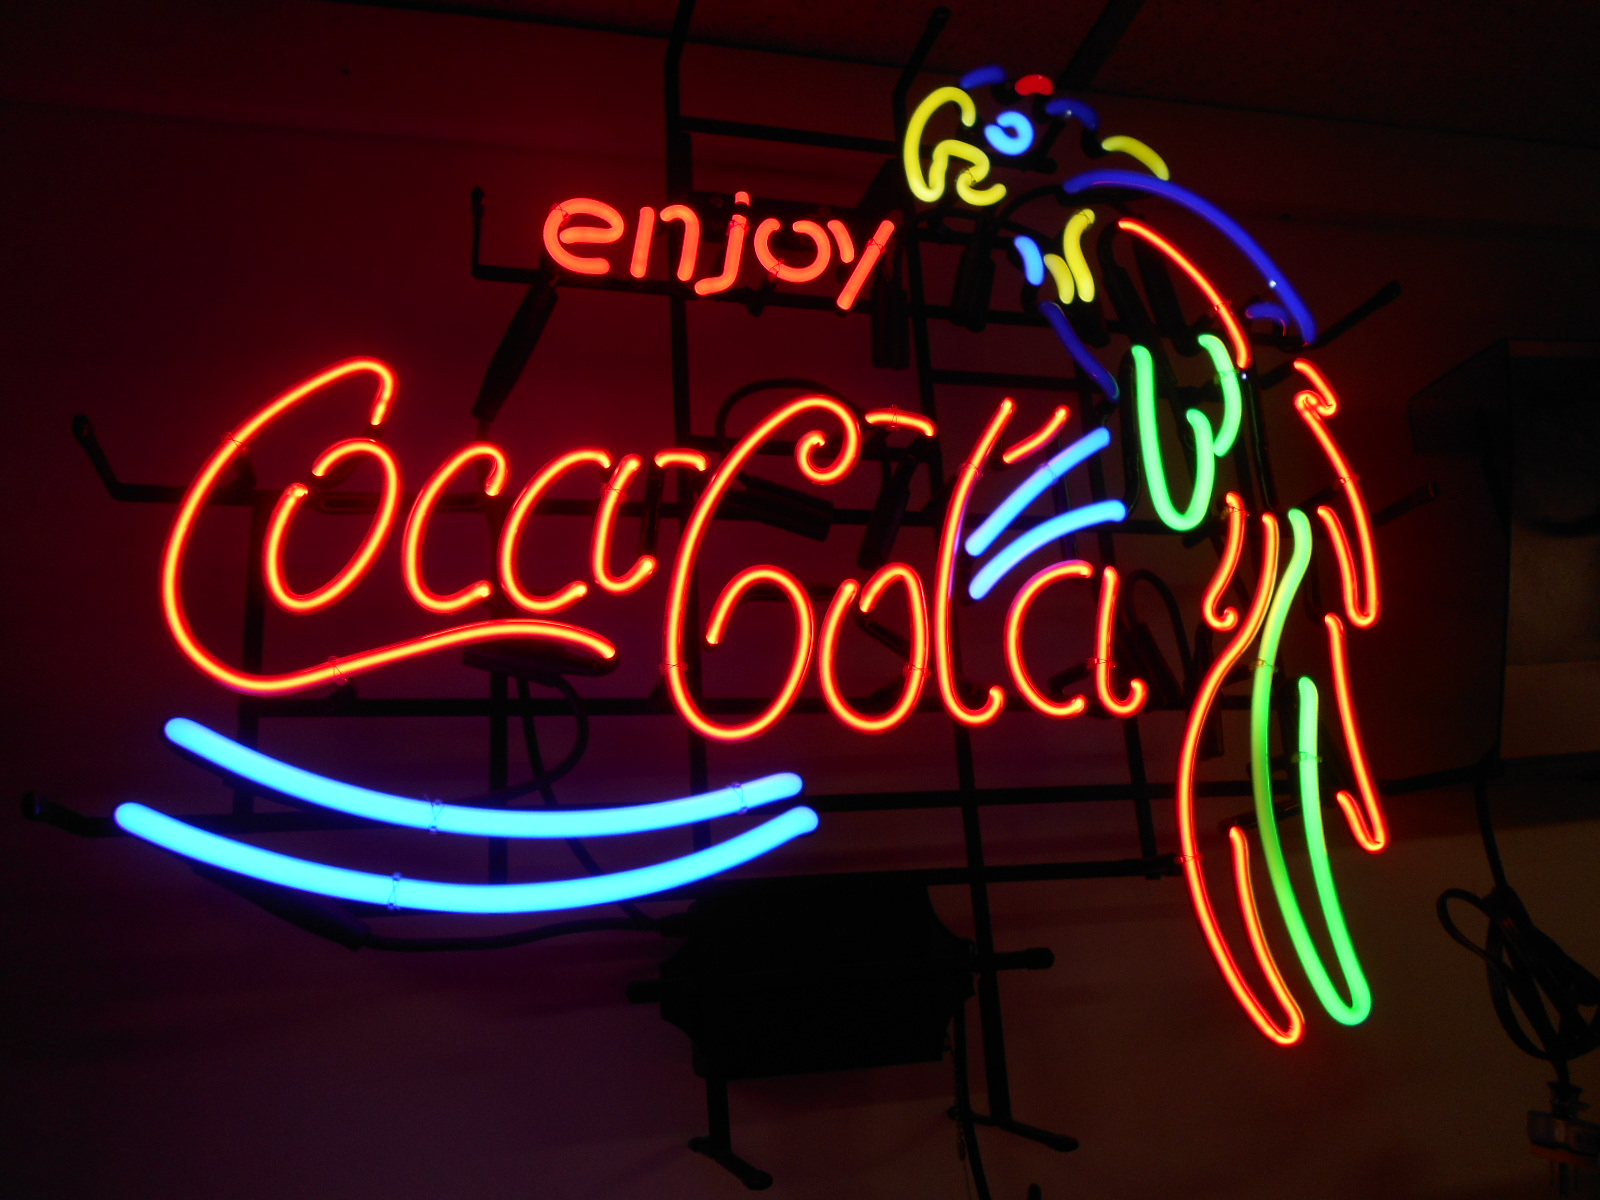 Neon Signs For Sale >> Coca Cola Parrot Neon Advertising Promotion Electric Bar Sign For Sale | COIN-OP PARTS ETC ...